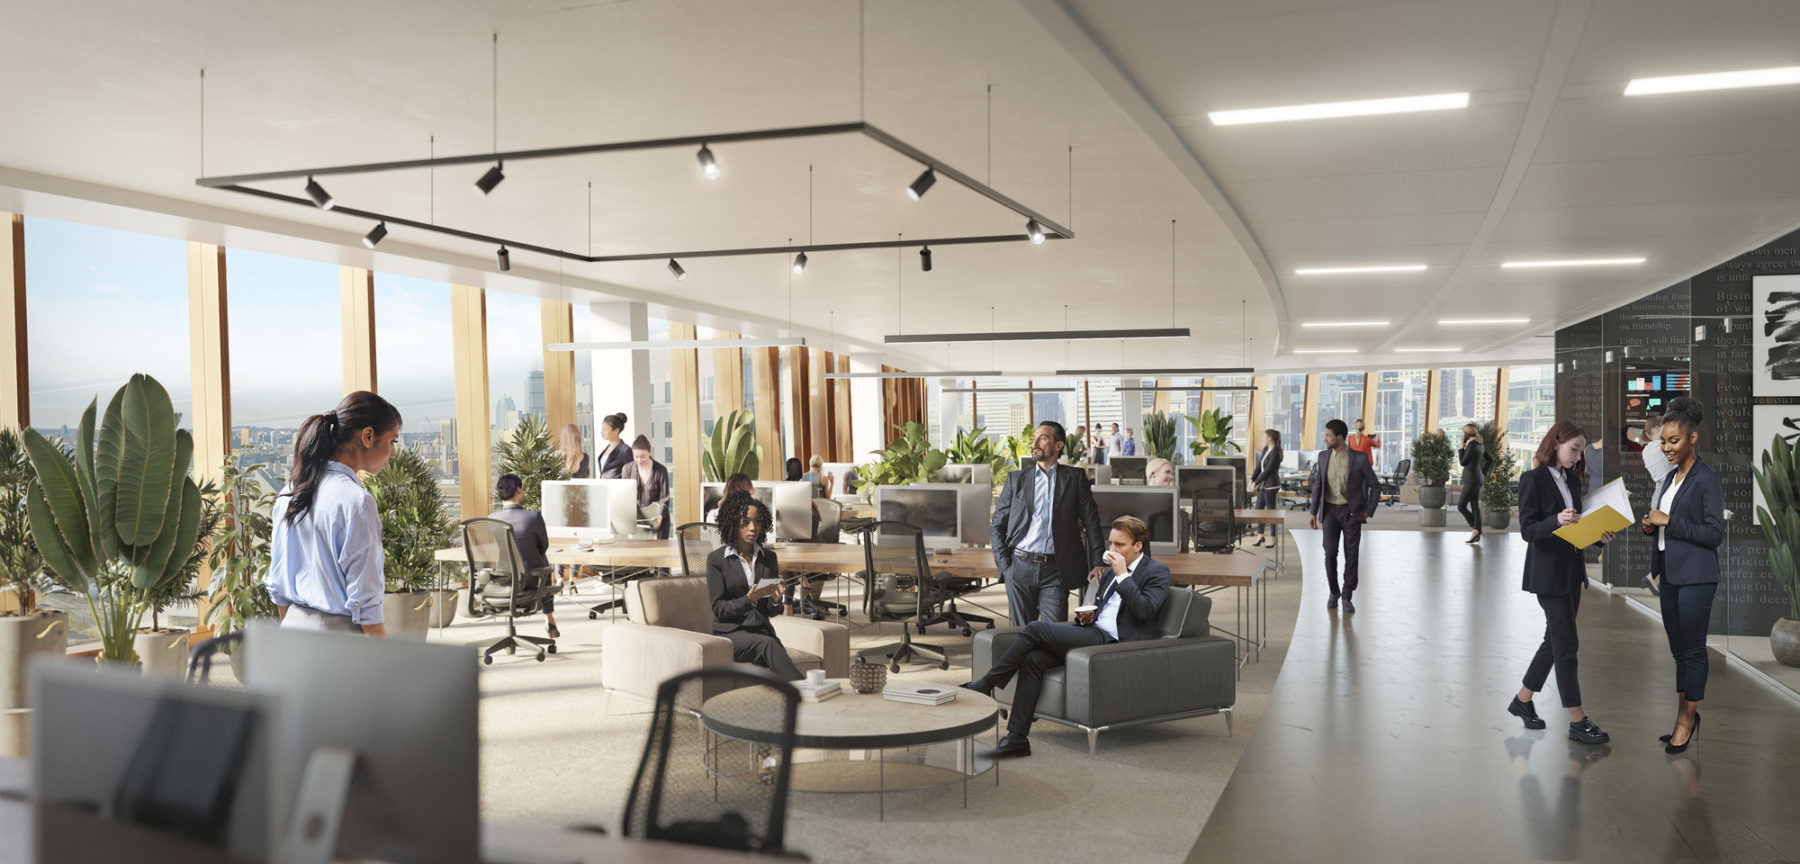 Interior rendering of office space